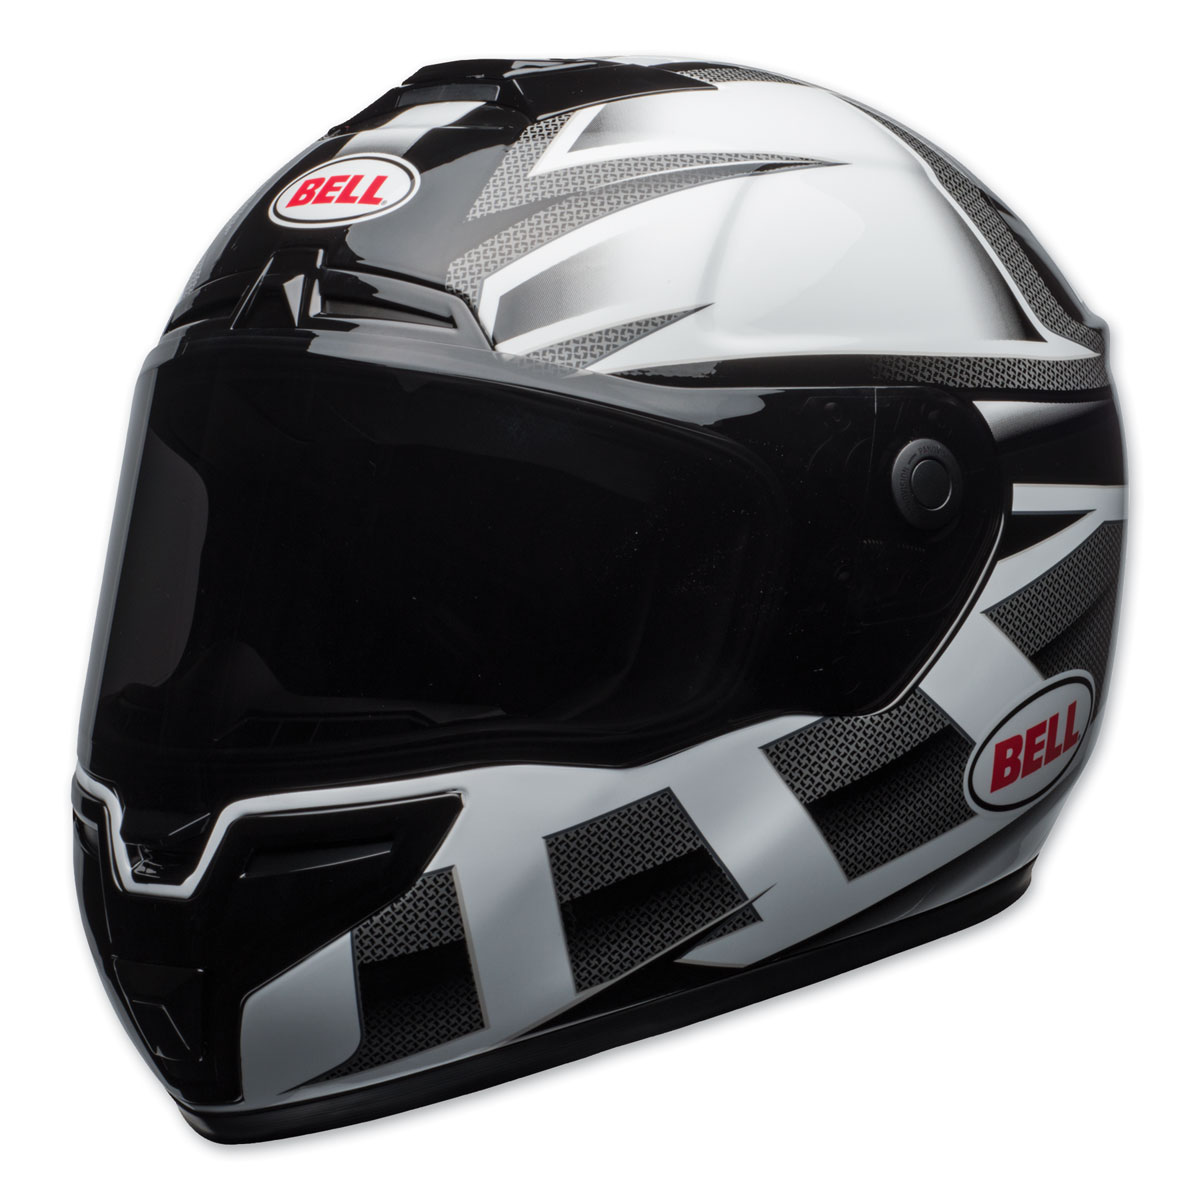 Bell SRT Predator Gloss White/Black Full Face Helmet